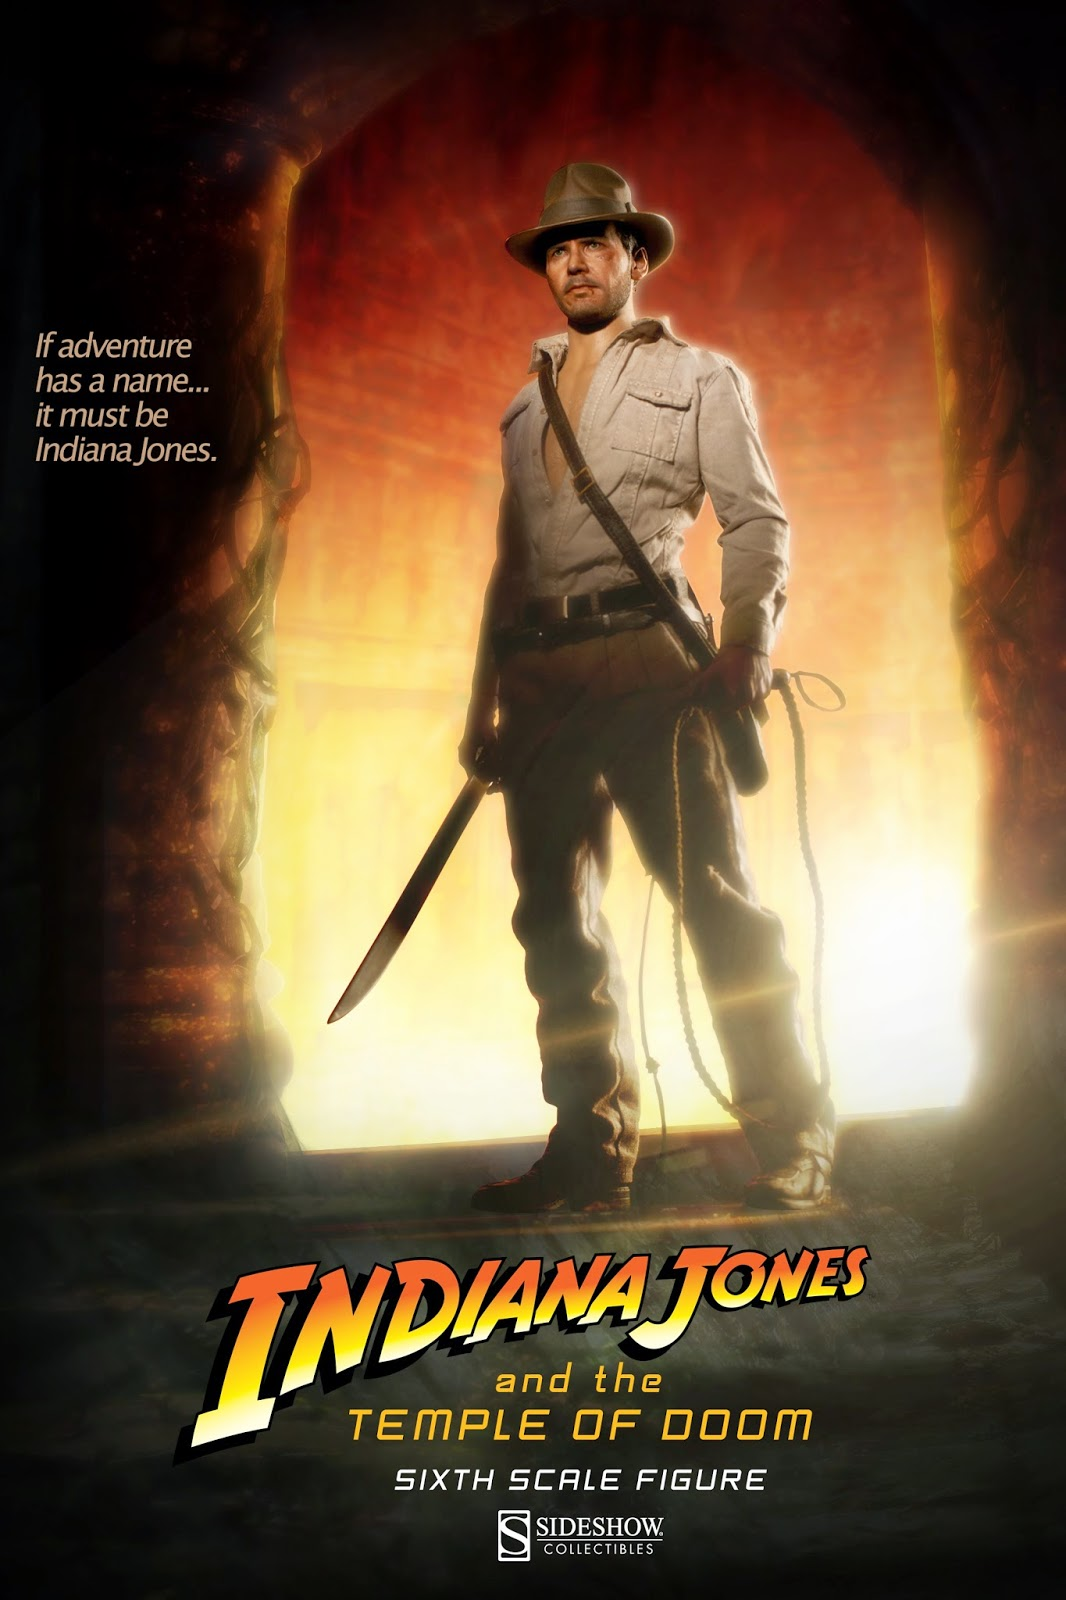 Indiana Jones Temple of Doom Figure From Sideshow Collectibles